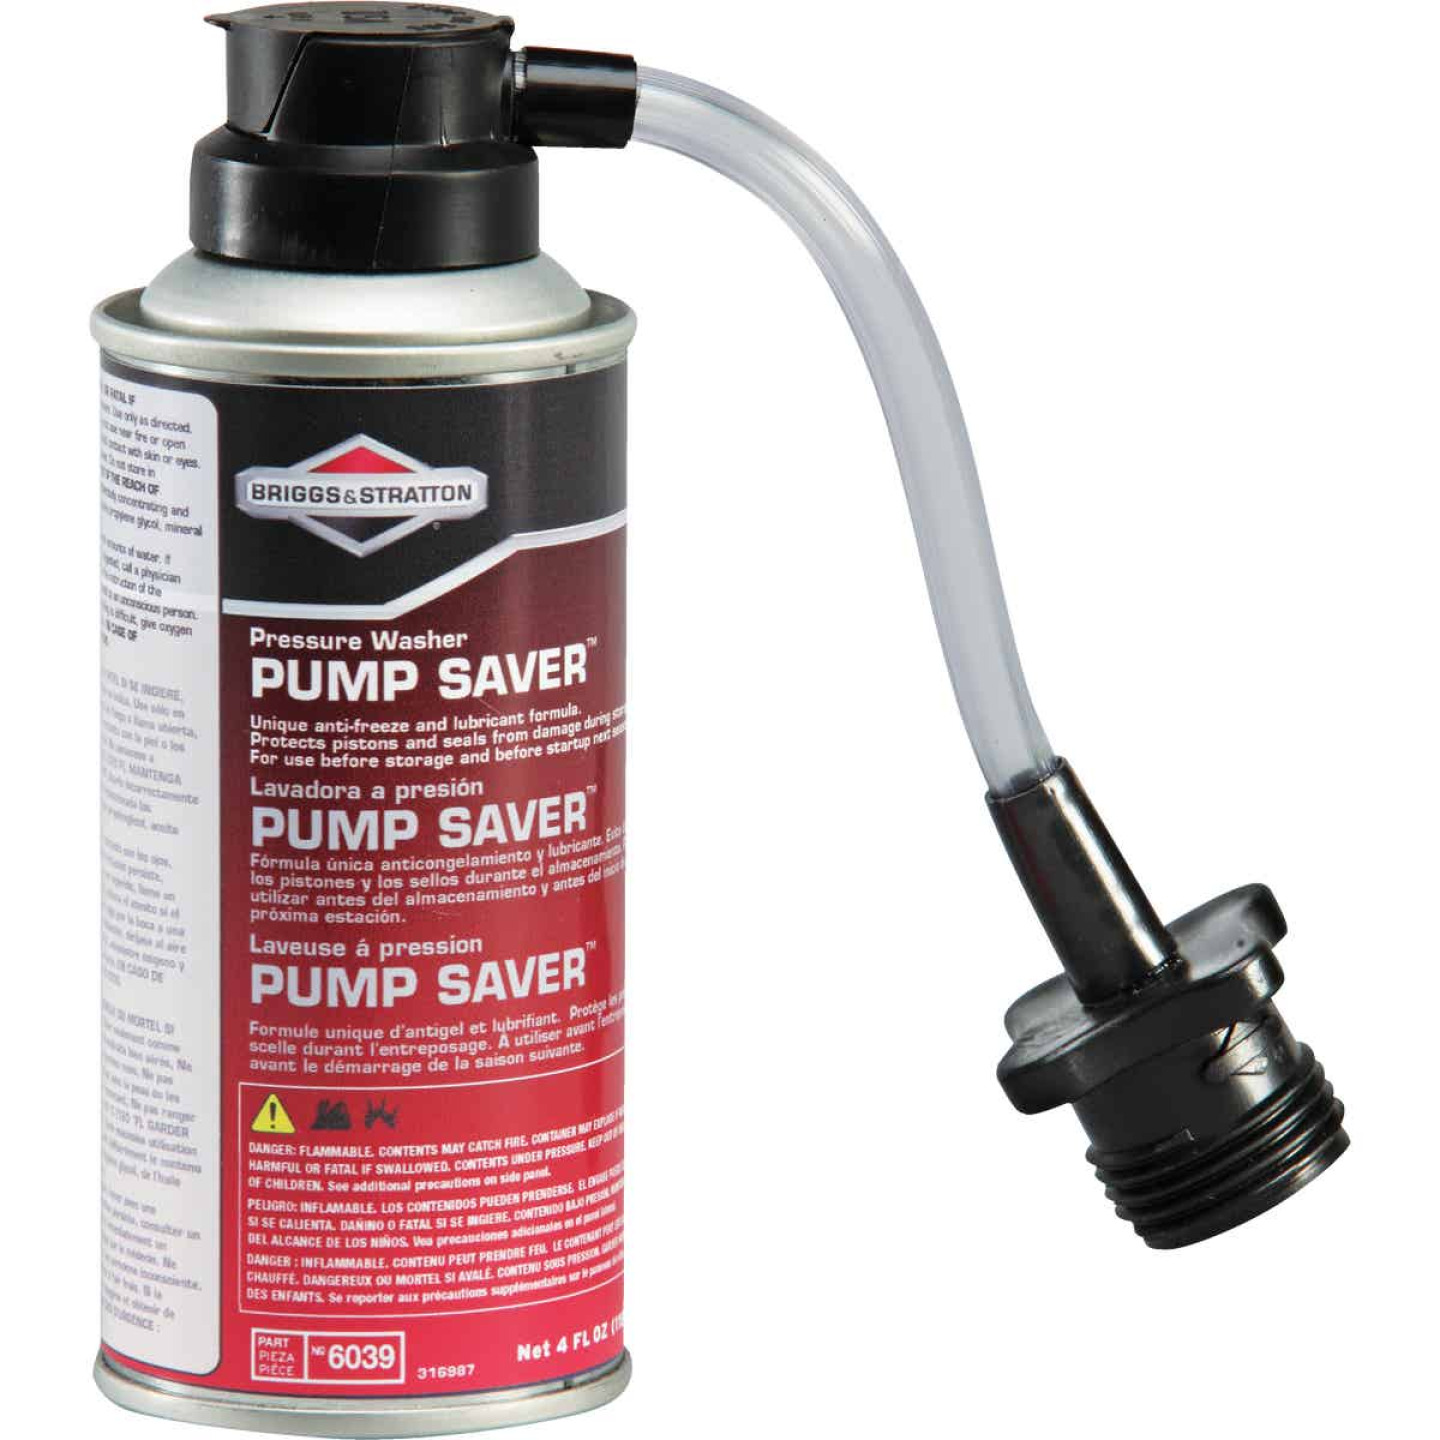 Briggs & Stratton Pump Saver 4 Oz. For Pressure Washer Image 3